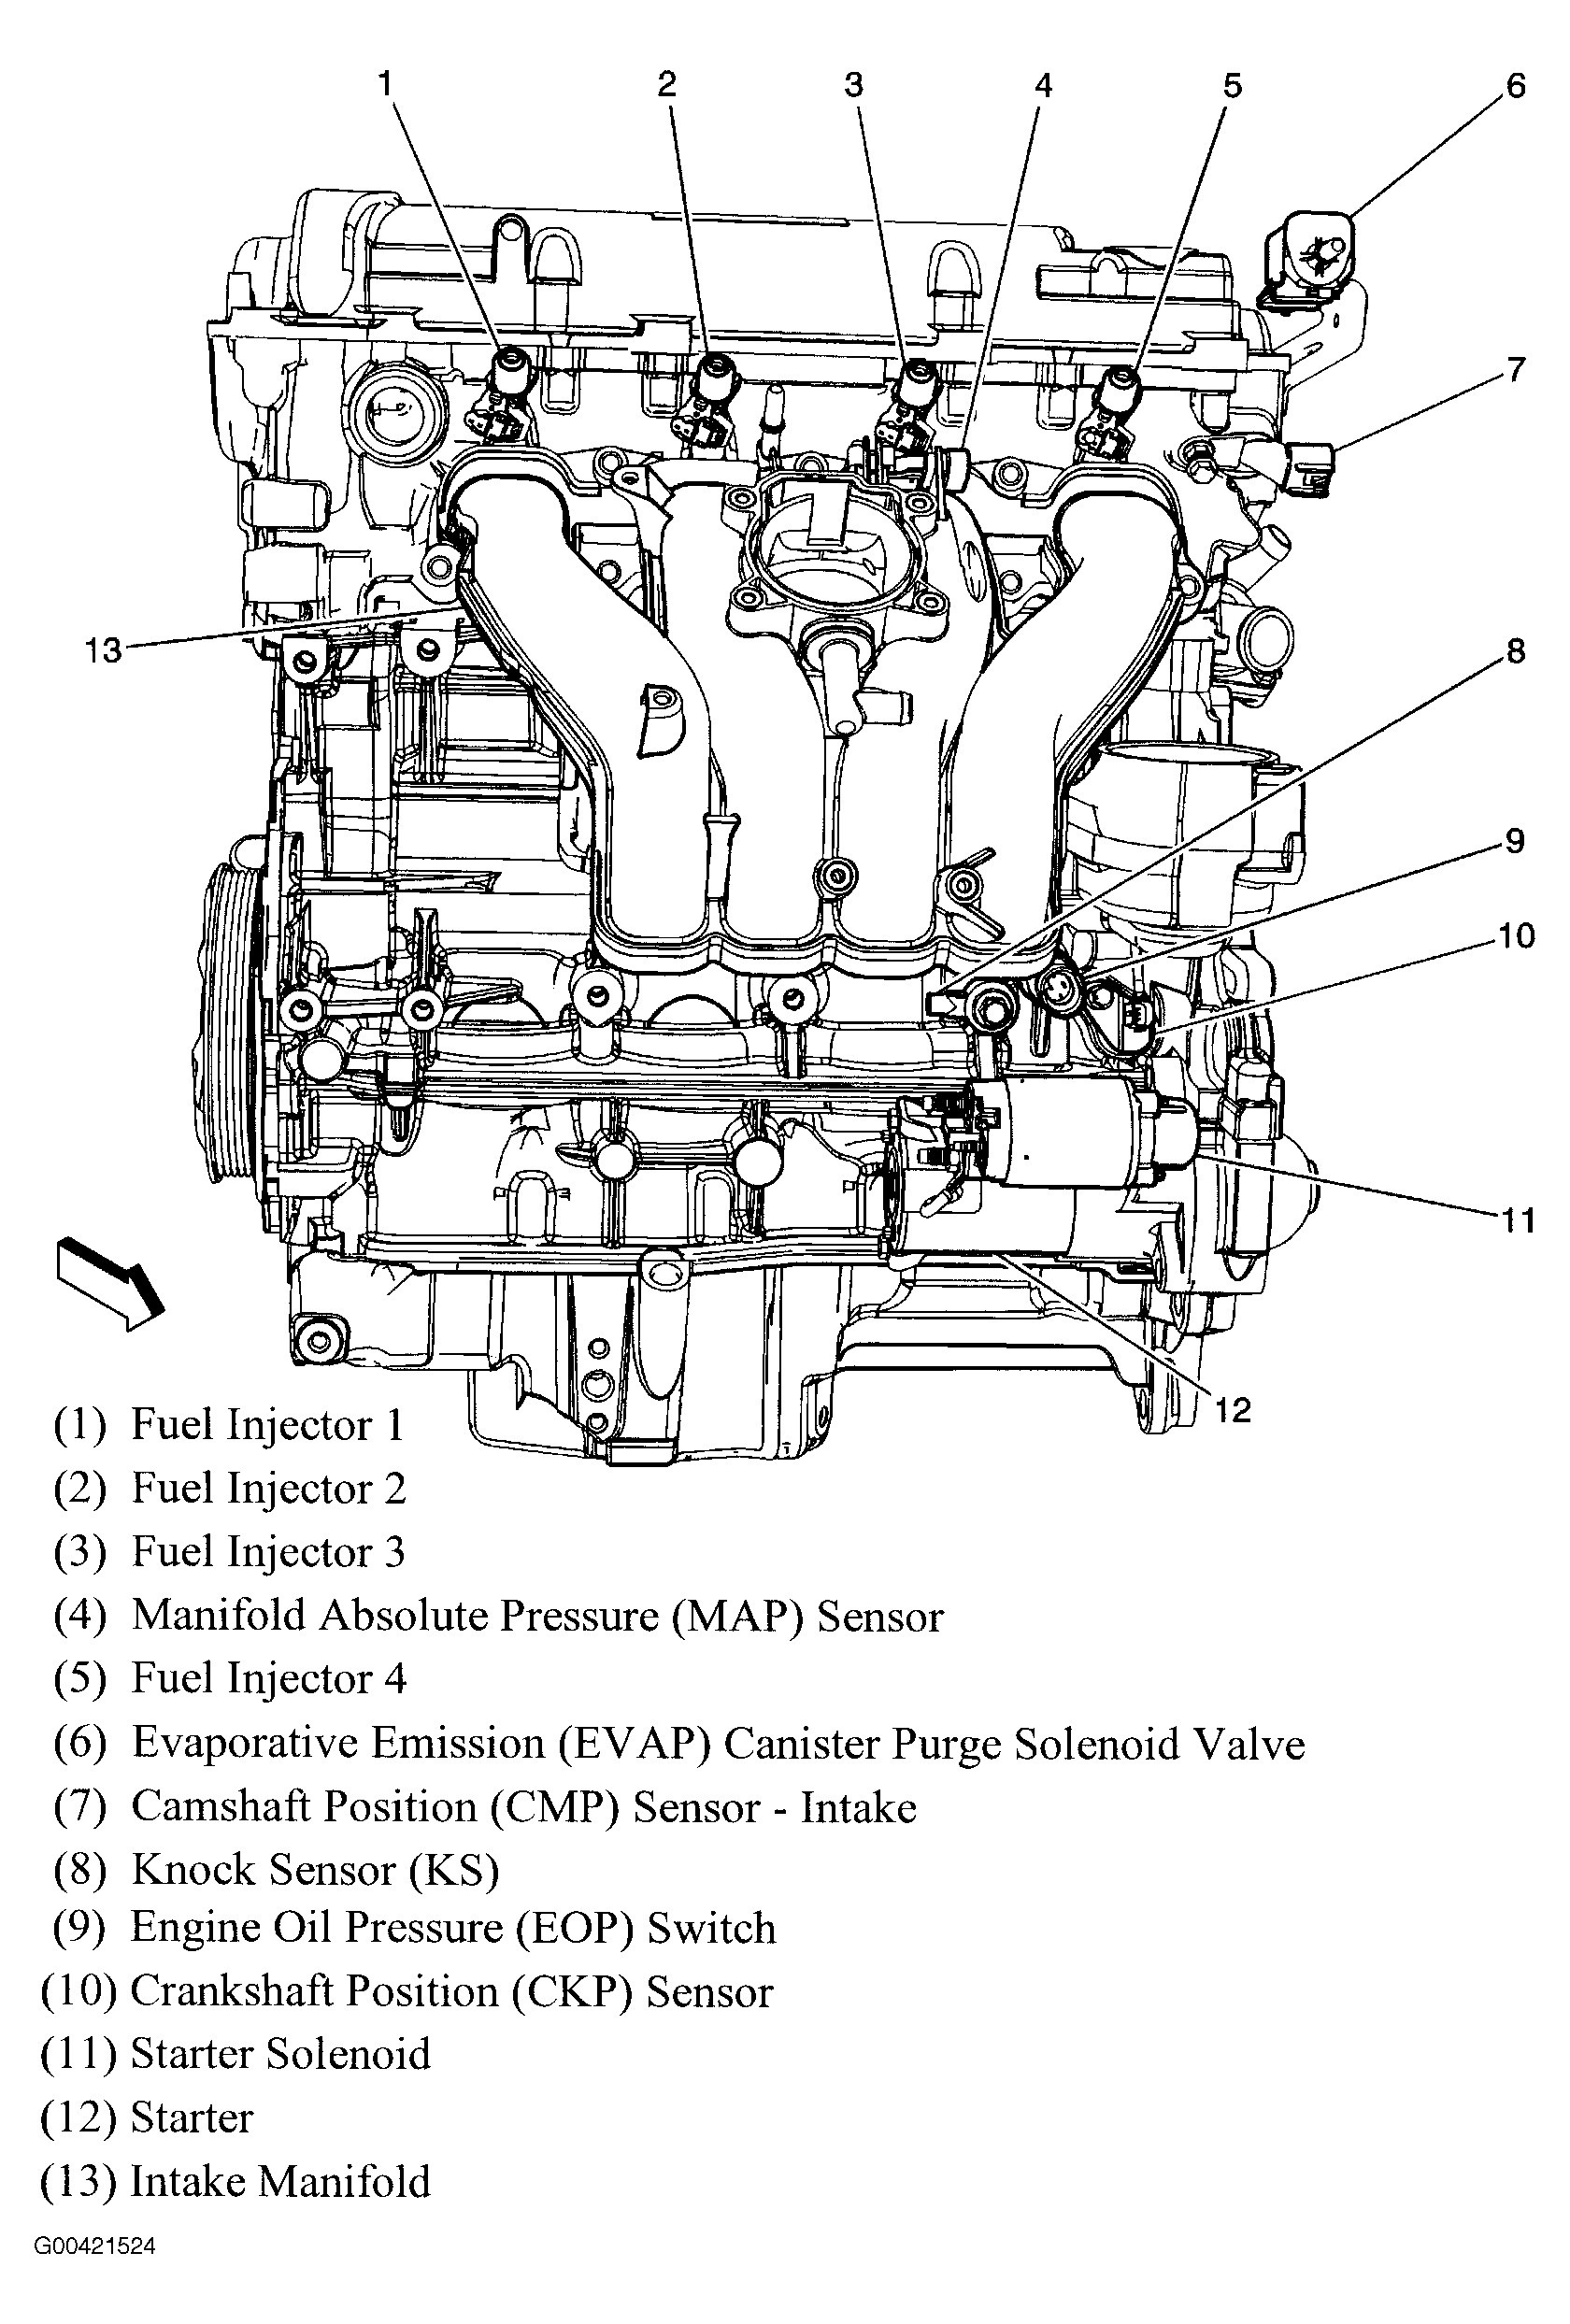 hight resolution of 2003 s10 engine diagram wiring diagram article vacuum diagram for 2003 chevy s10 2 2 car tuning